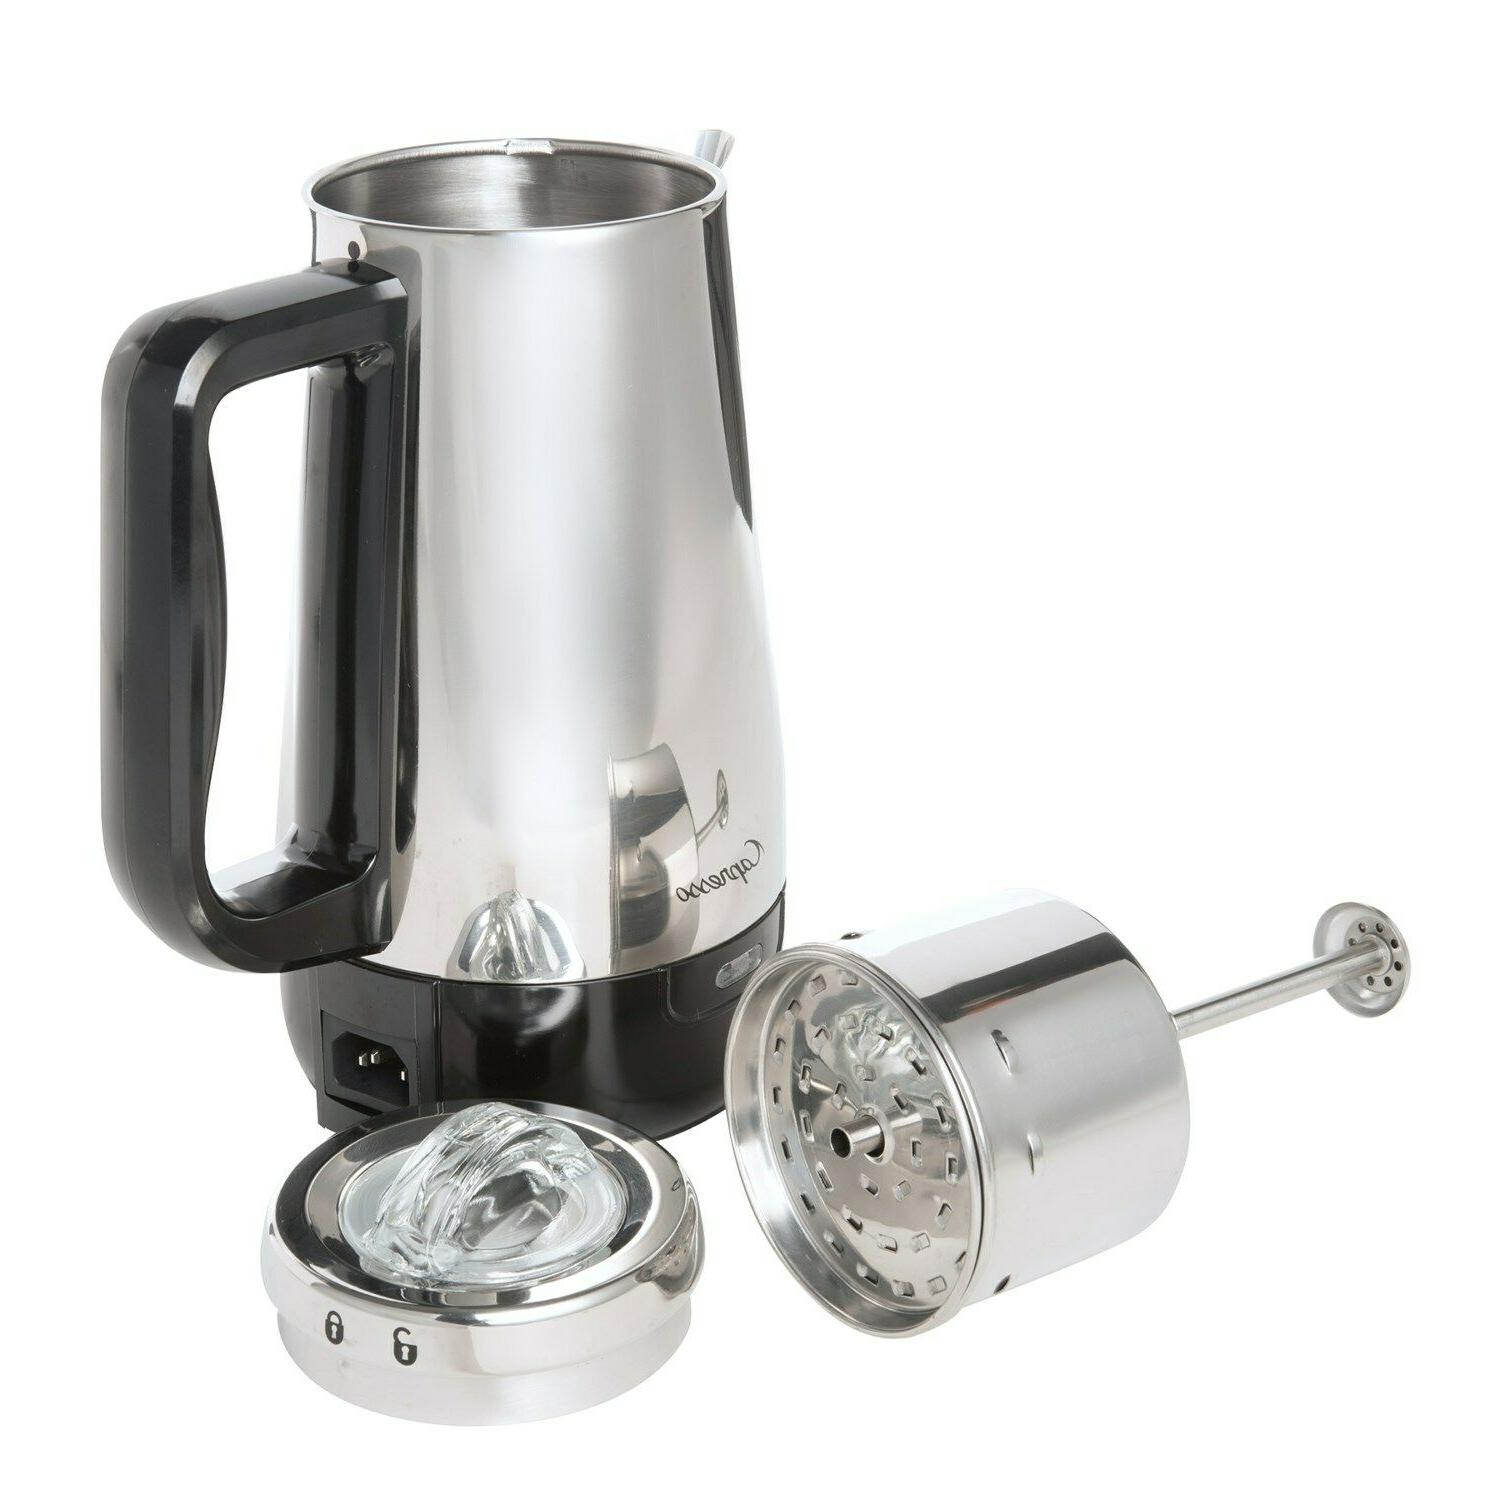 perk 8 cup electric percolator stainless steel